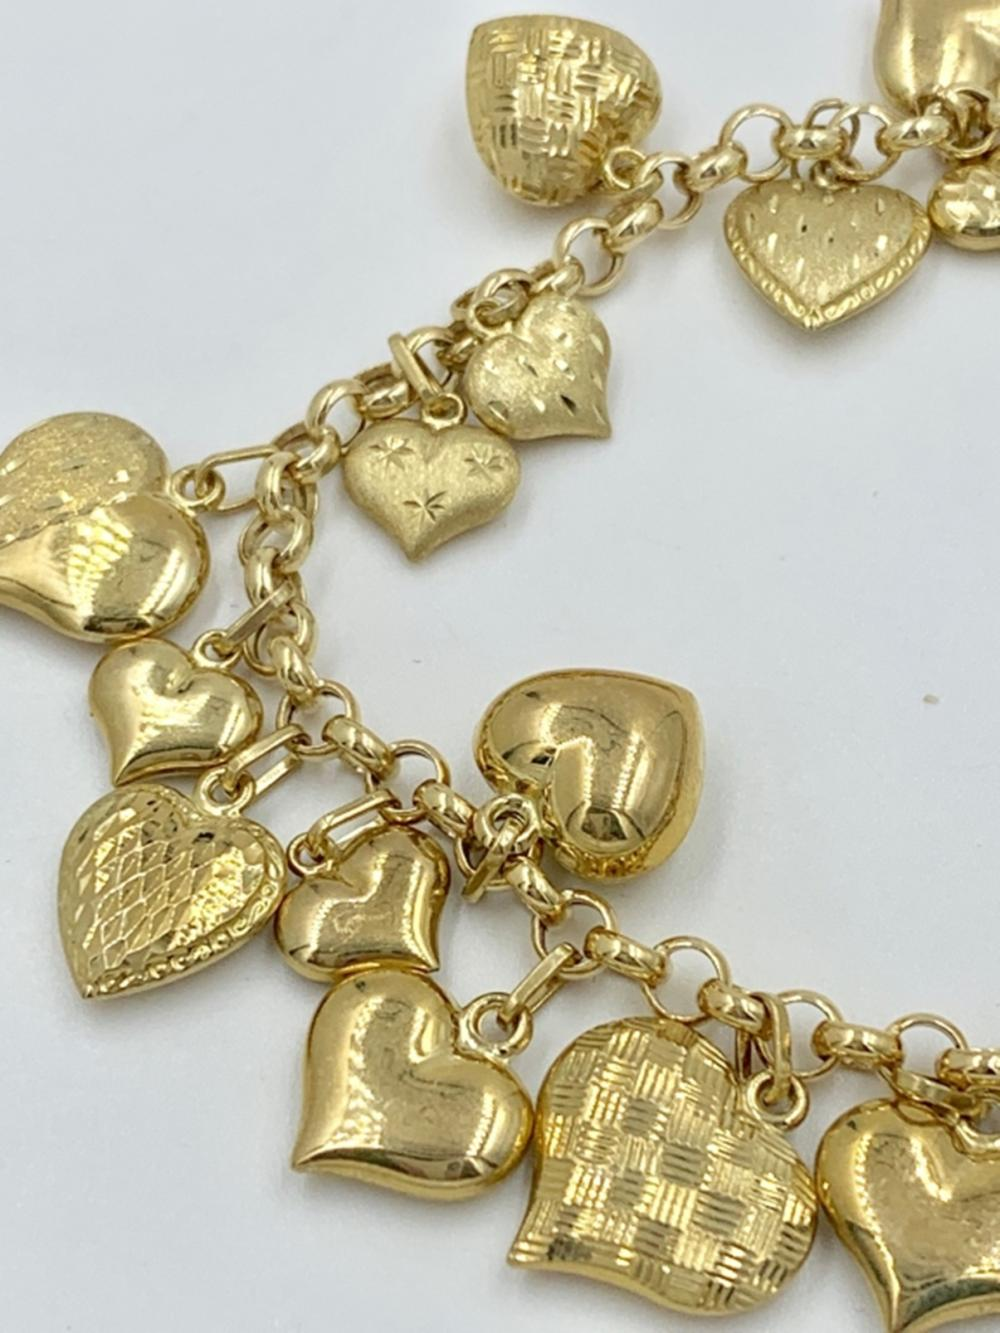 14K CHARM BRACELET WITH HEART CHARMS